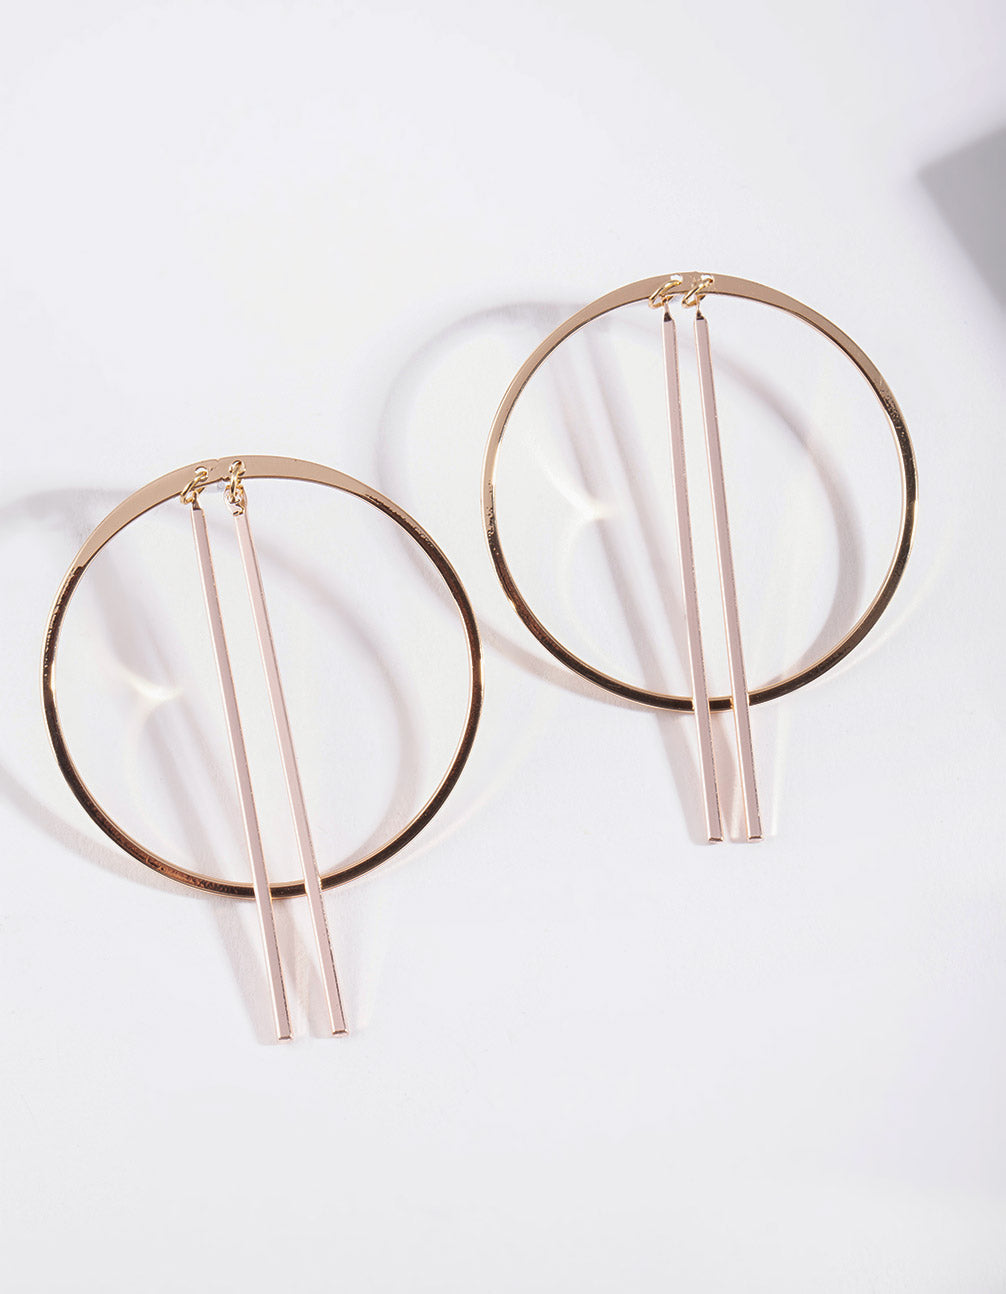 Mix Metal Thin Hoop Stick Stud Earring